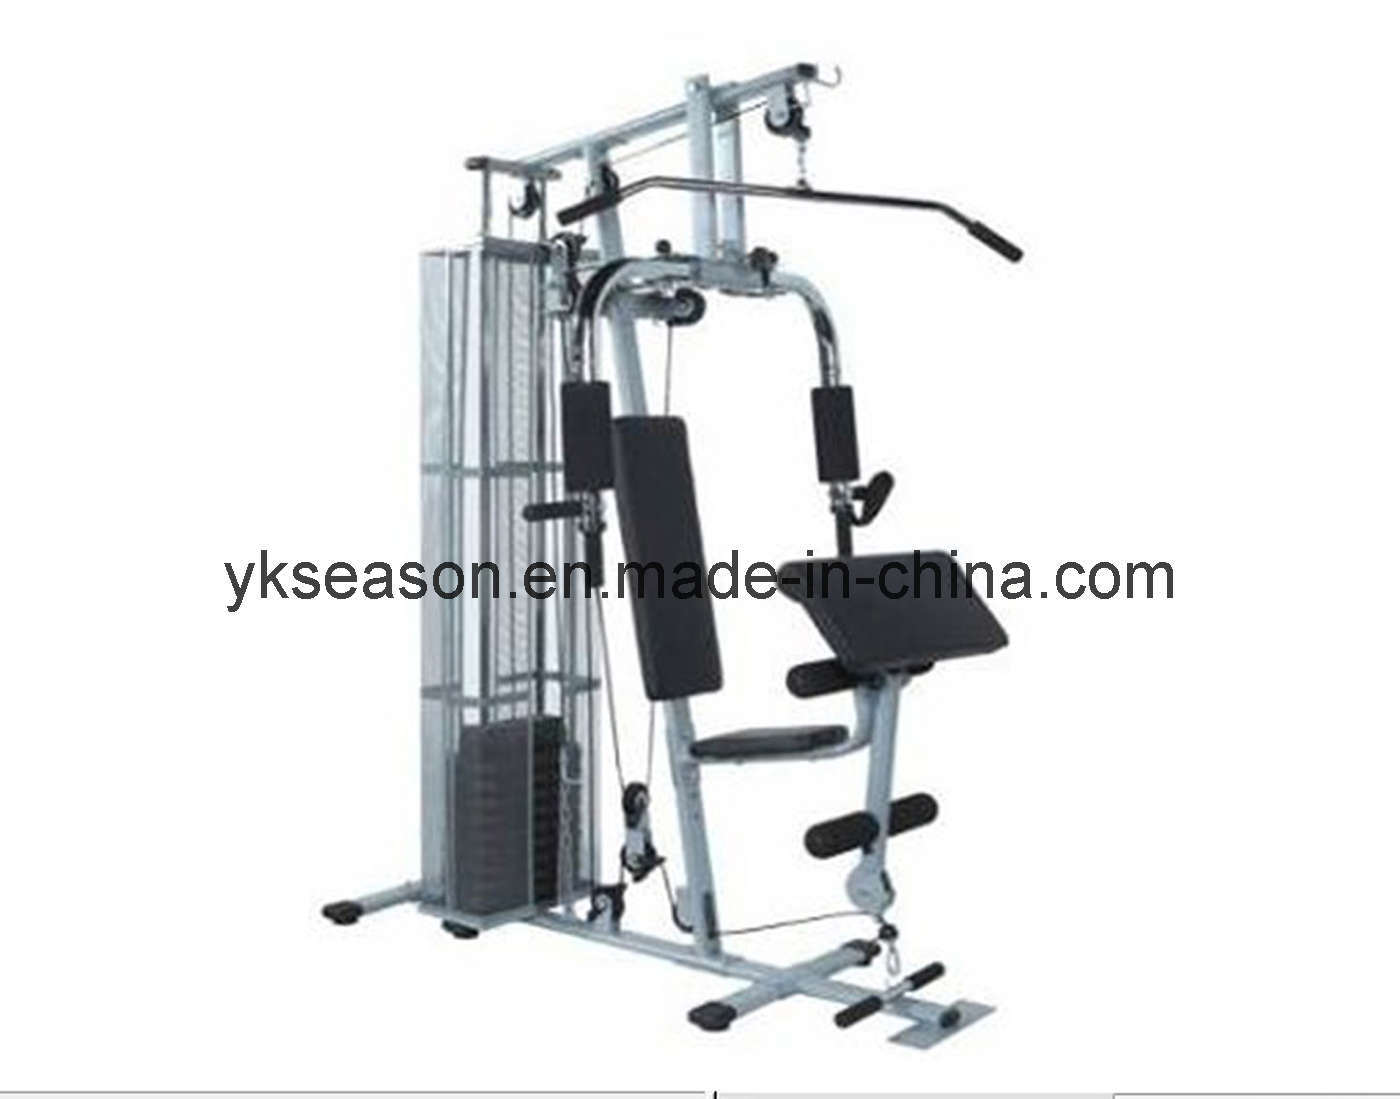 China home gym equipment sj gyms